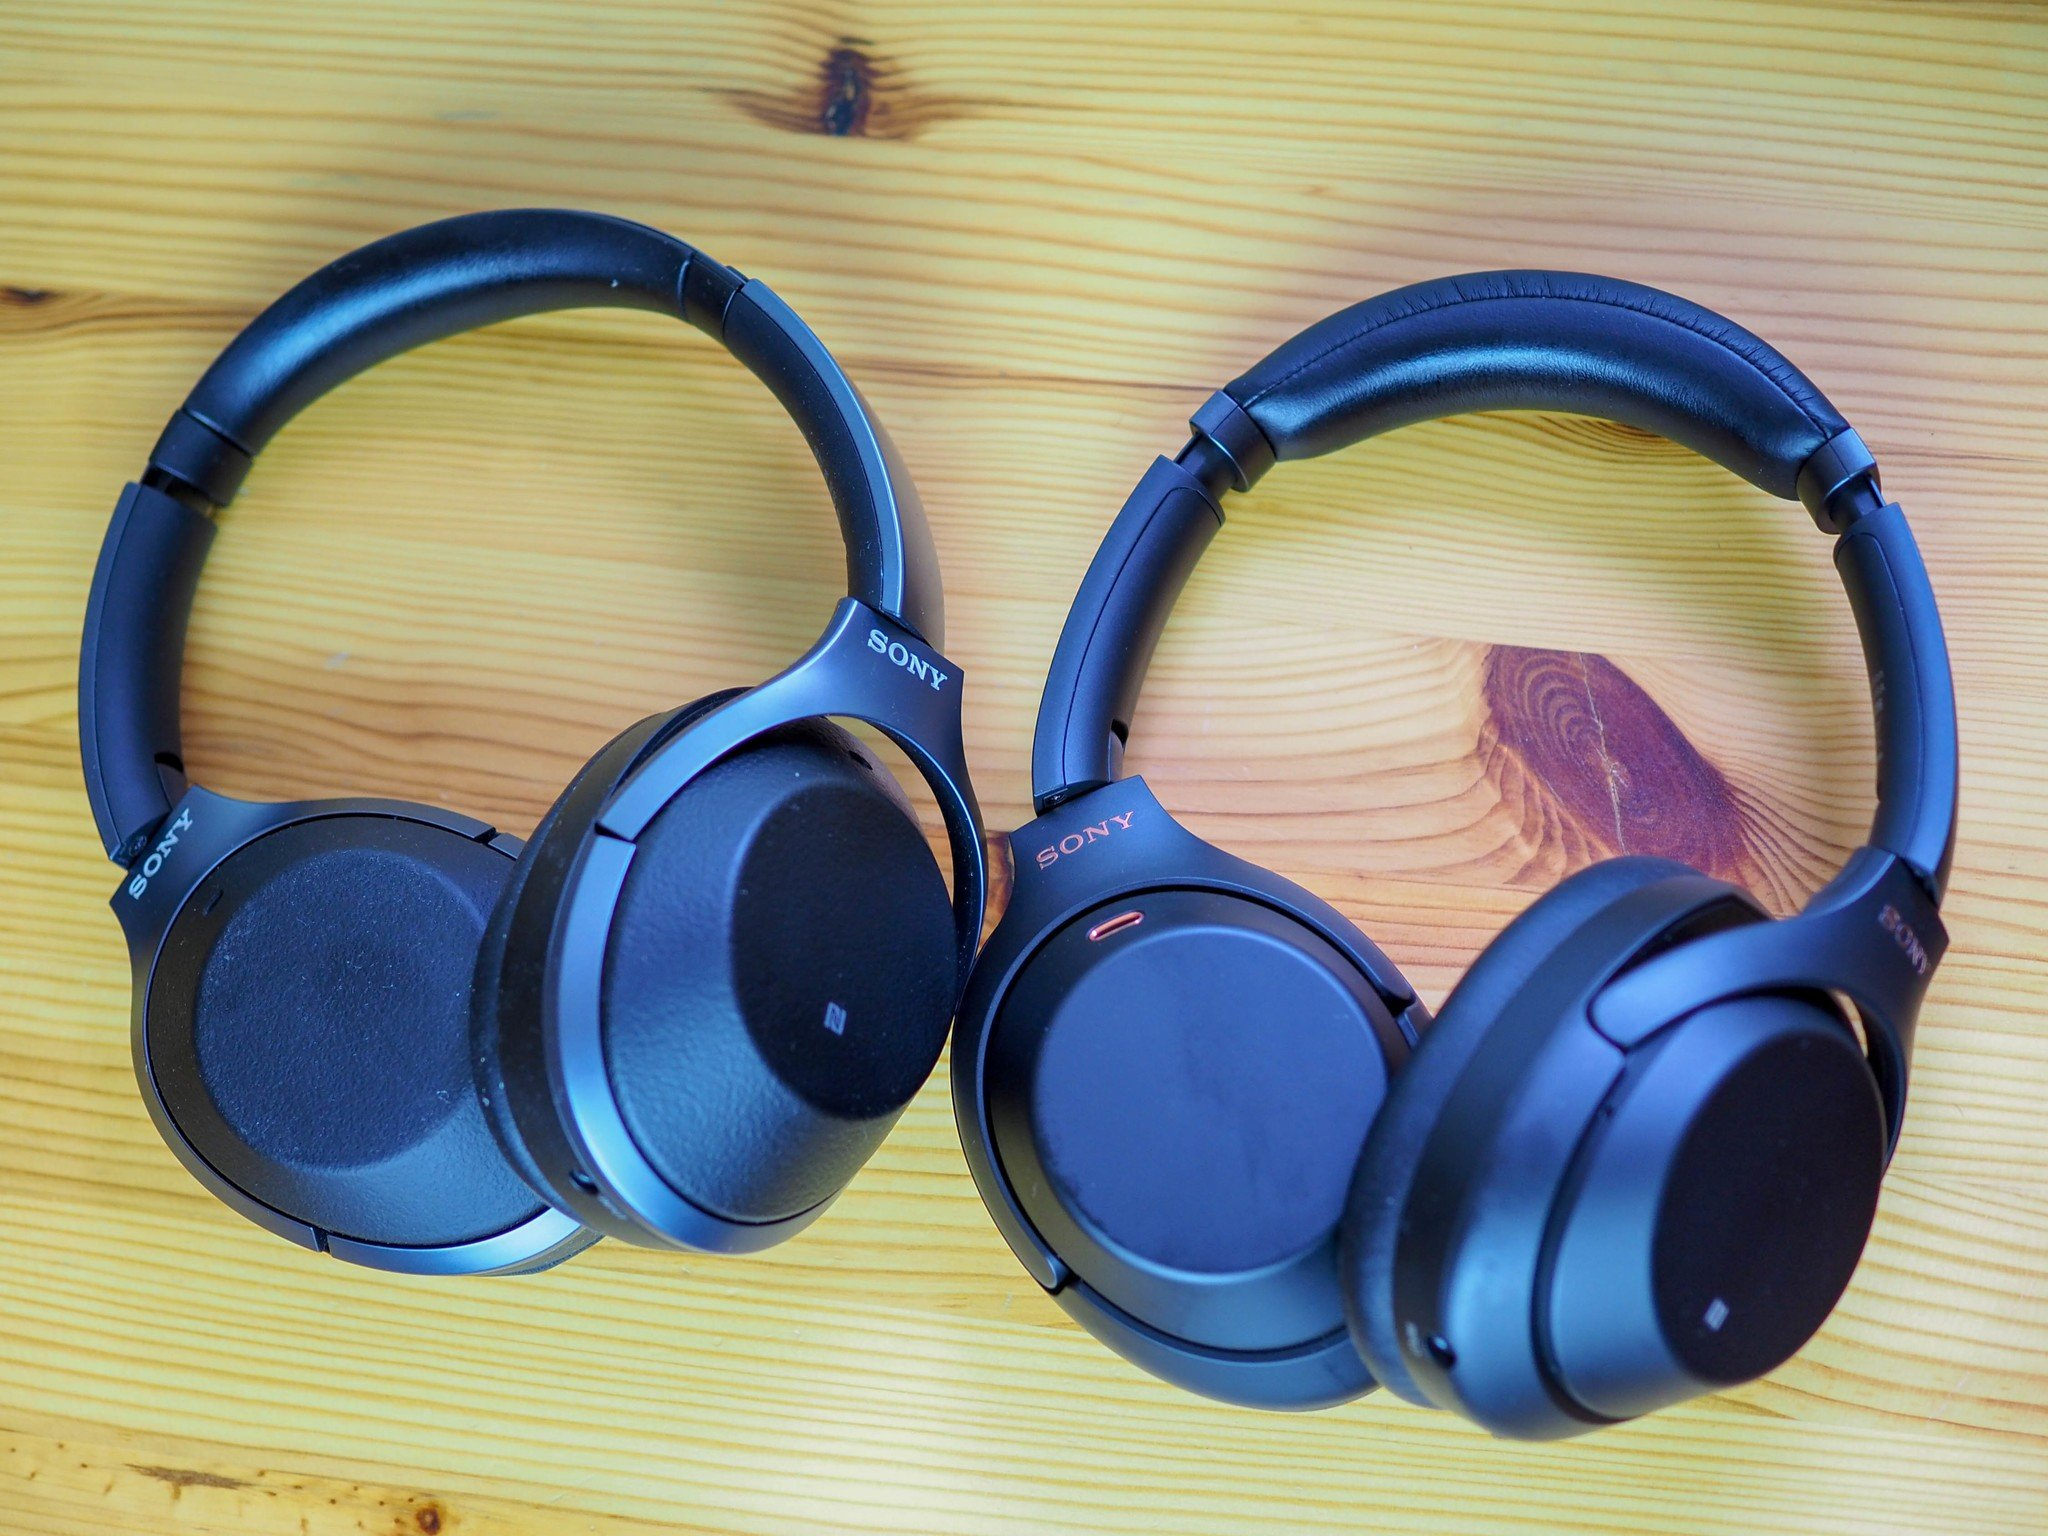 Sony WH1000XM3 vs. Sony MDR-1000X: Should you upgrade? | Android Central